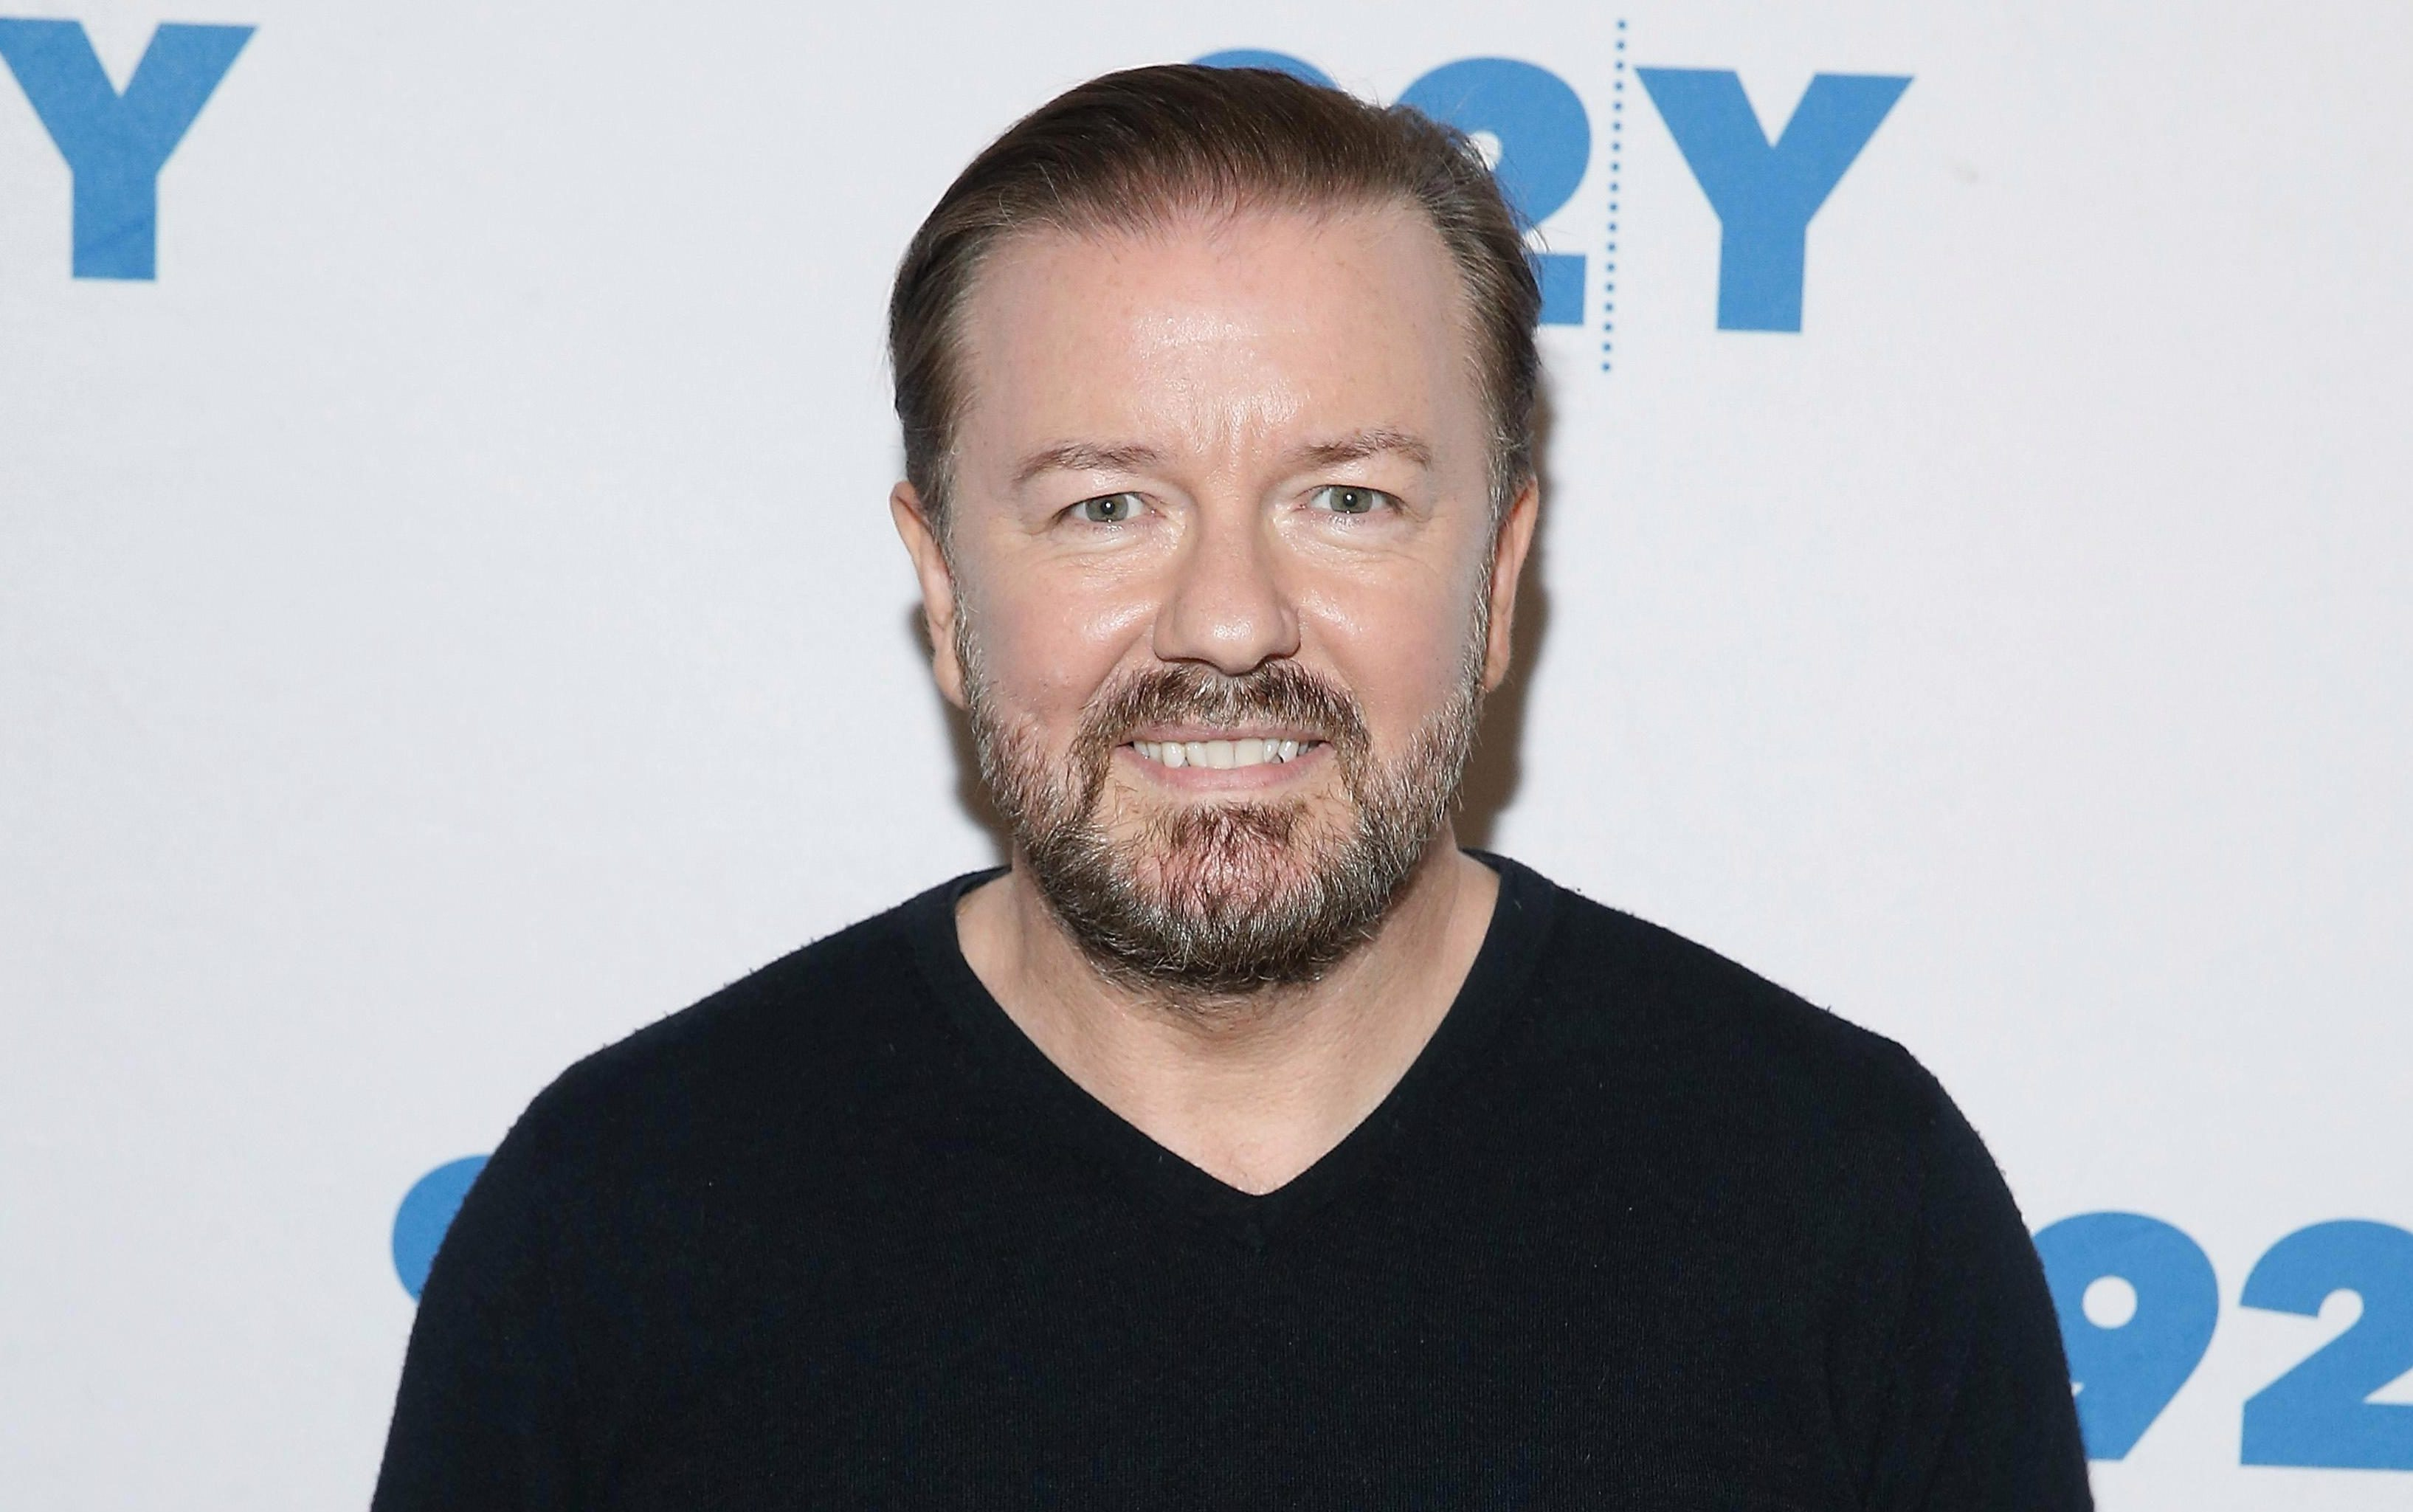 Ricky Gervais also joined the debate, and claimed other riders will have to up their game to beat her